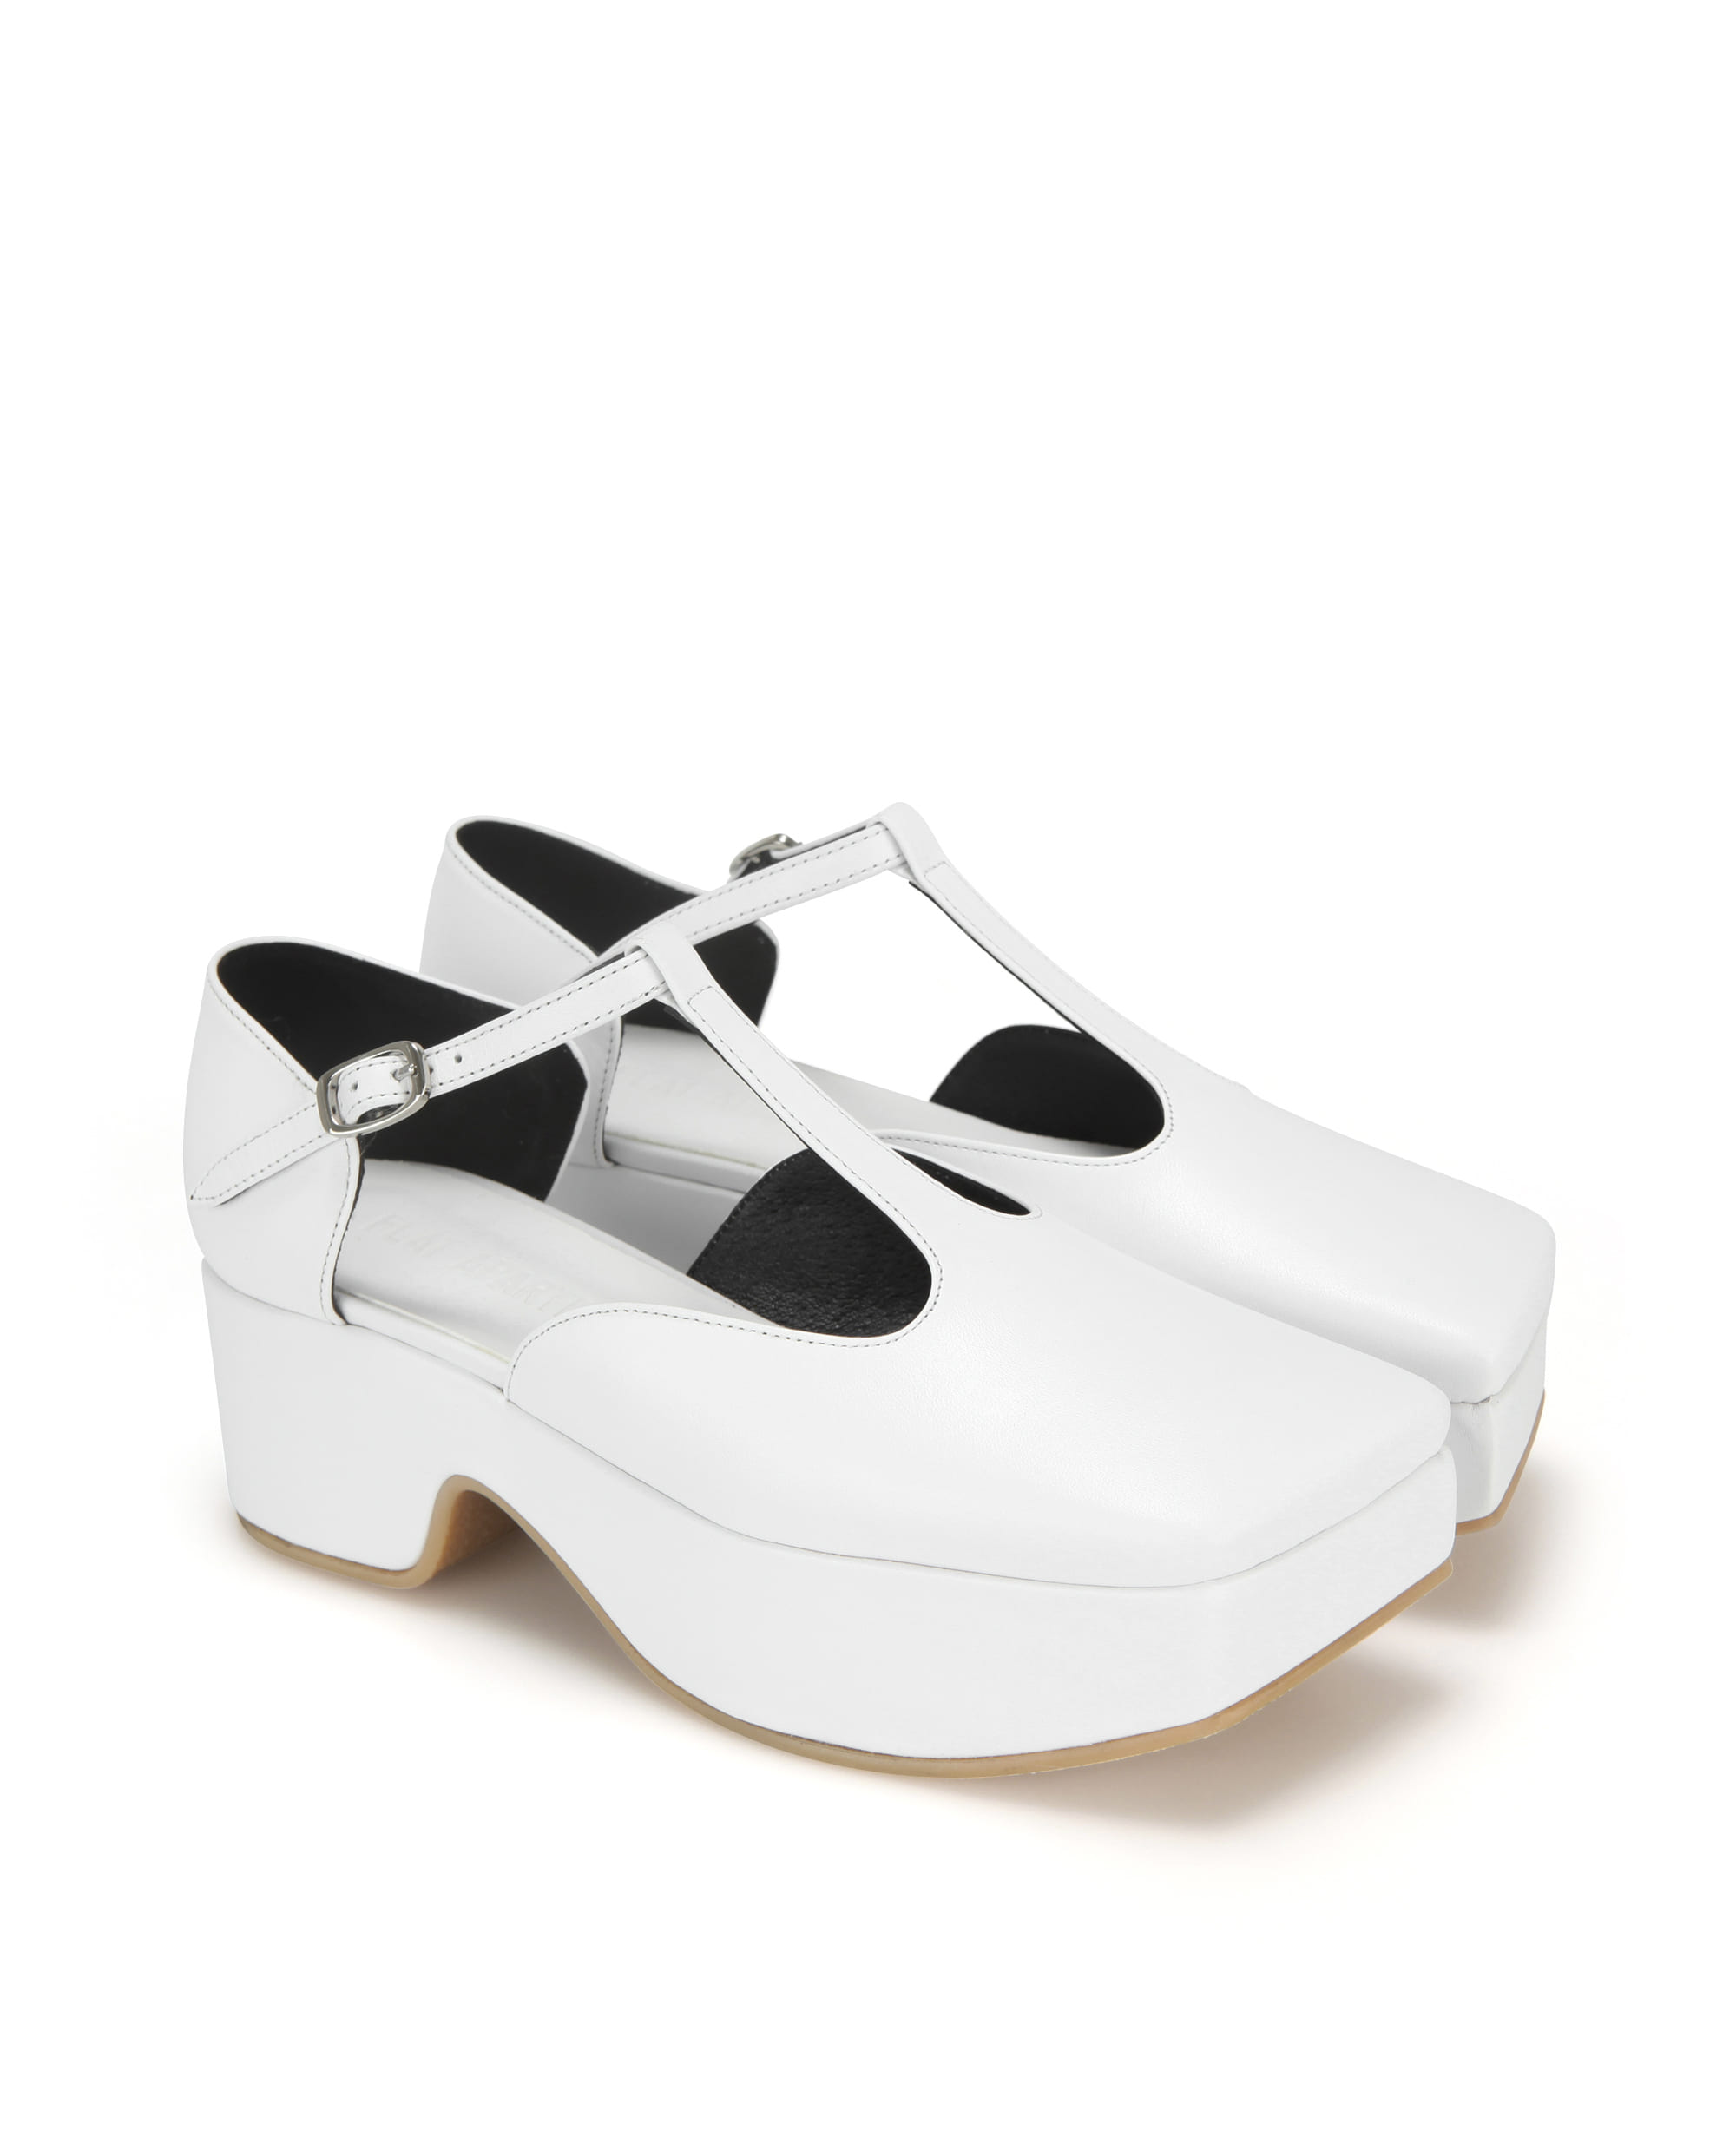 Squared toe T-strap mary jane platforms | White